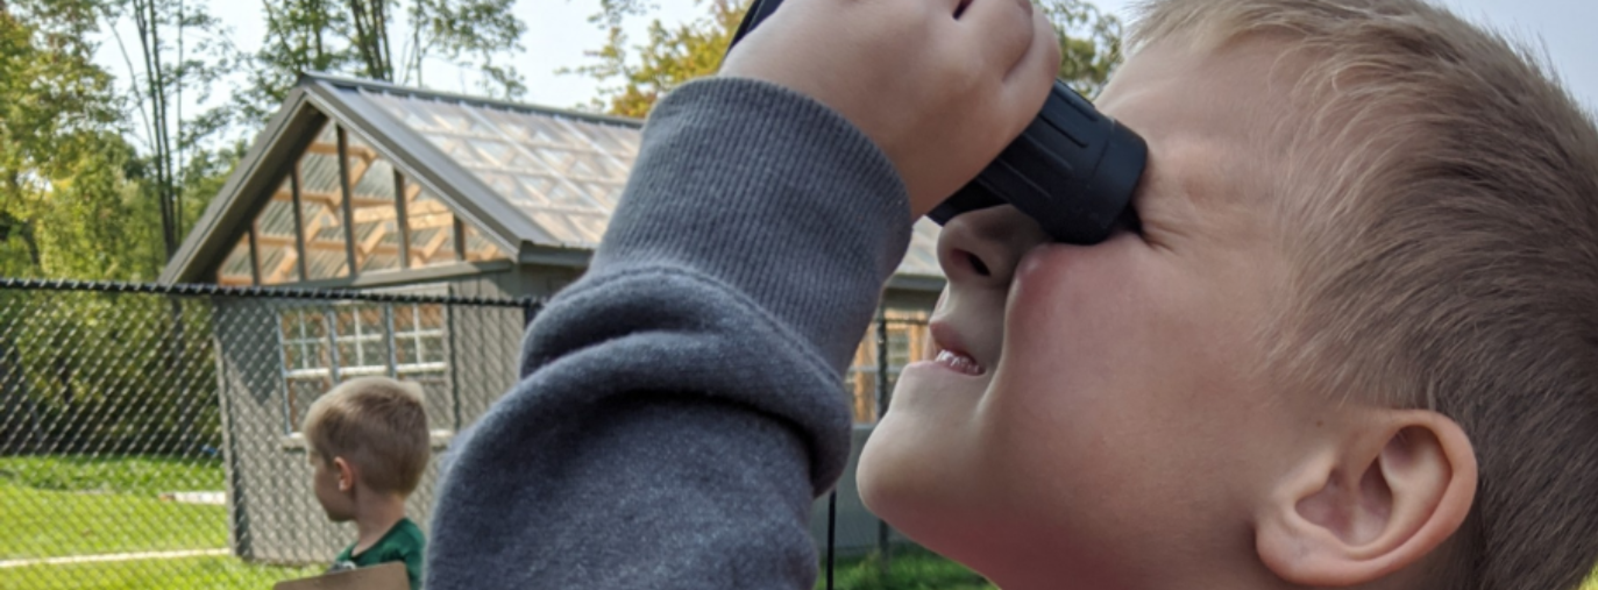 student looking up with binoculars